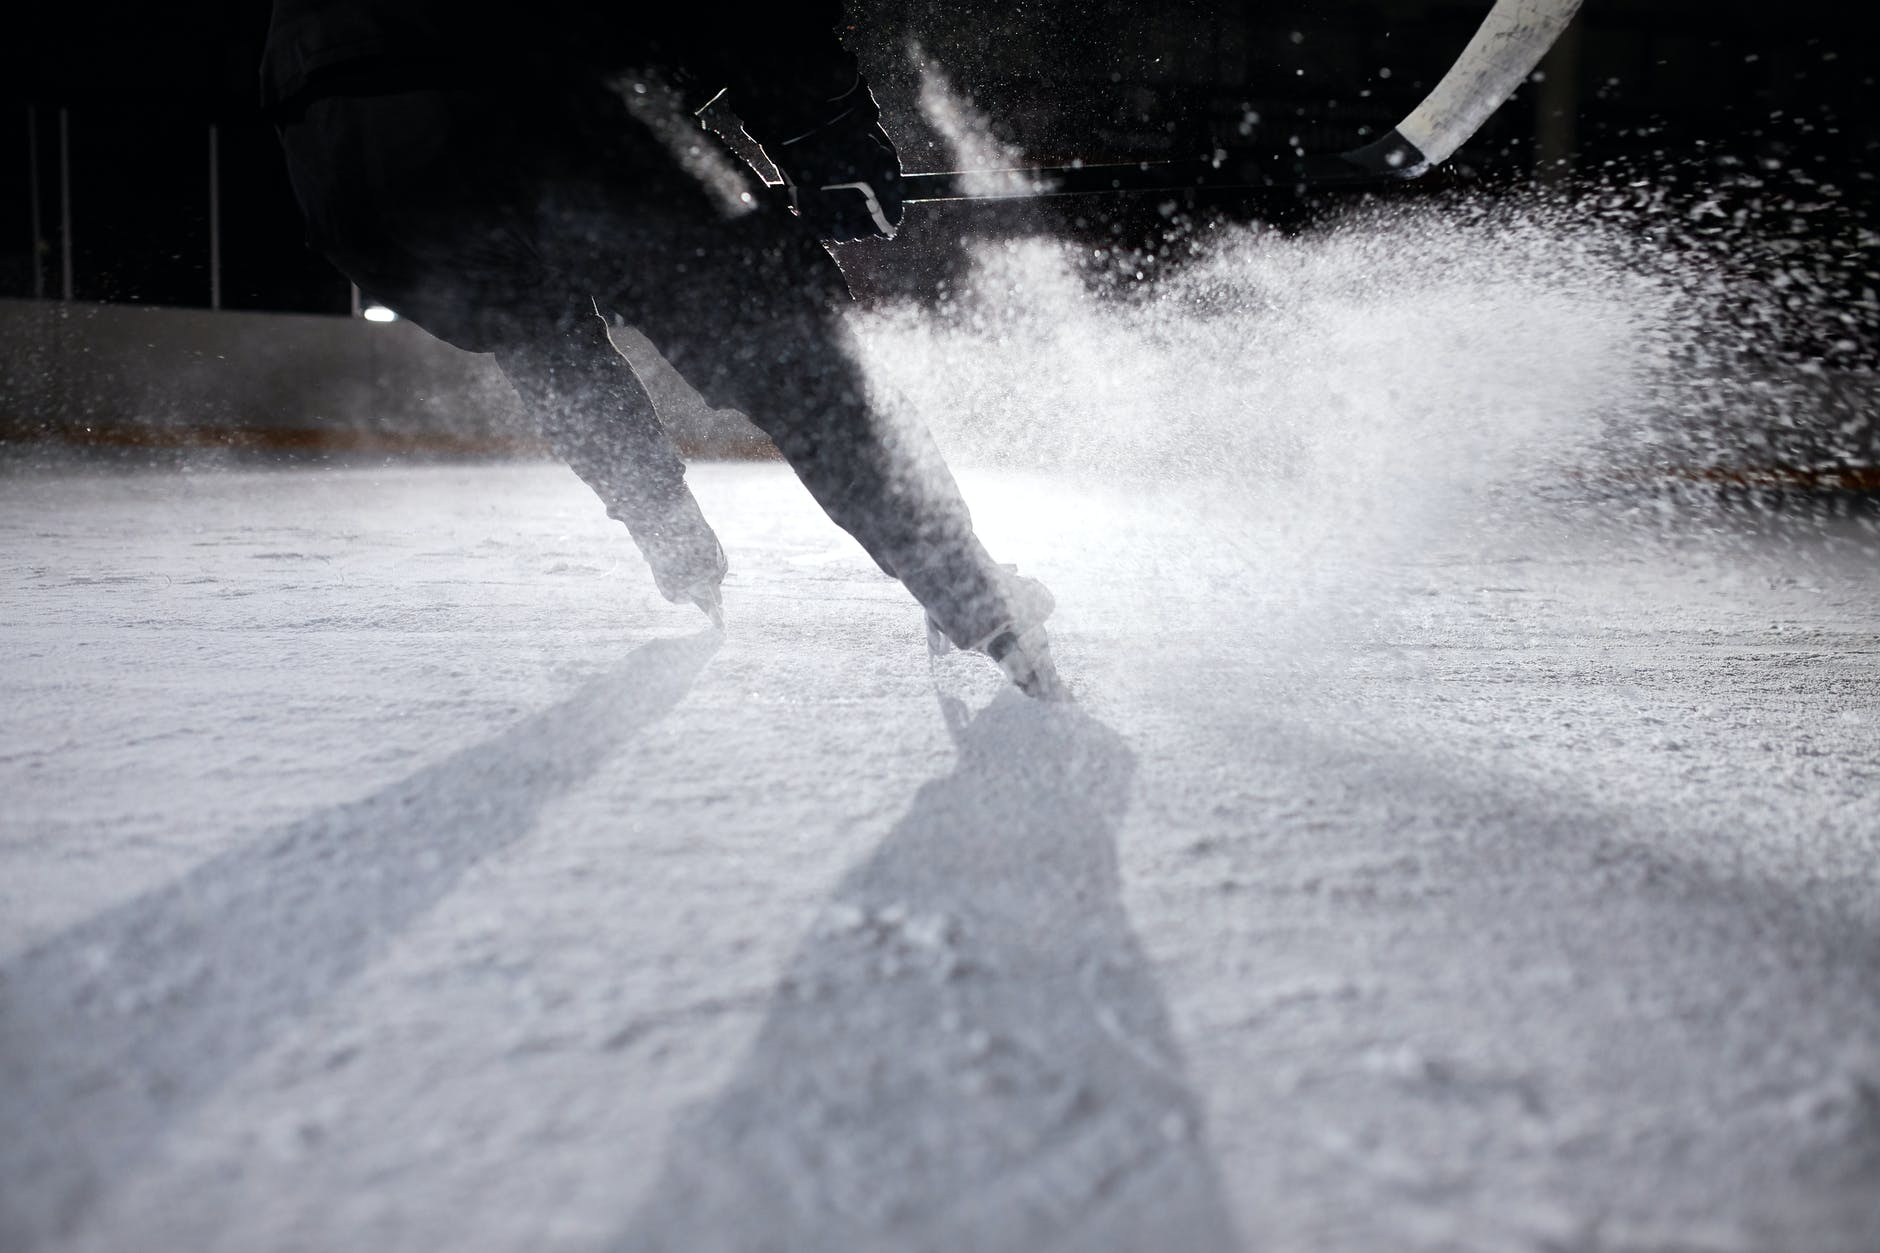 person in black pants walking on snow covered ground